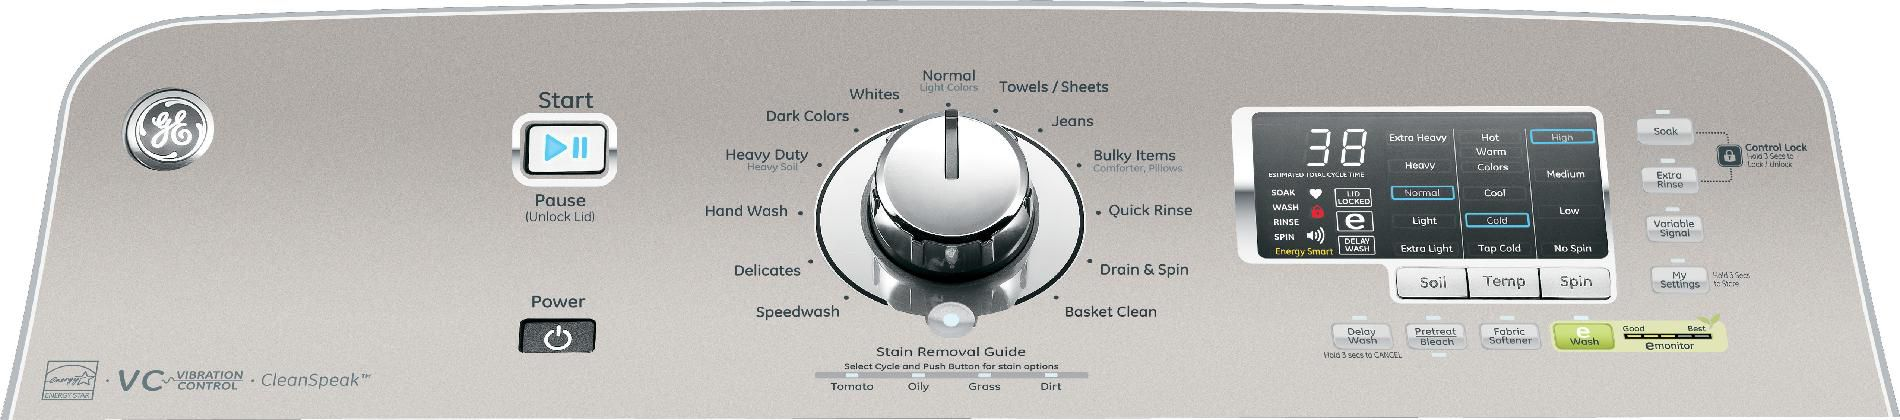 GE 4.8 cu. ft. High-Efficiency Top-Load Washer w/ Stainless Steel Basket - White